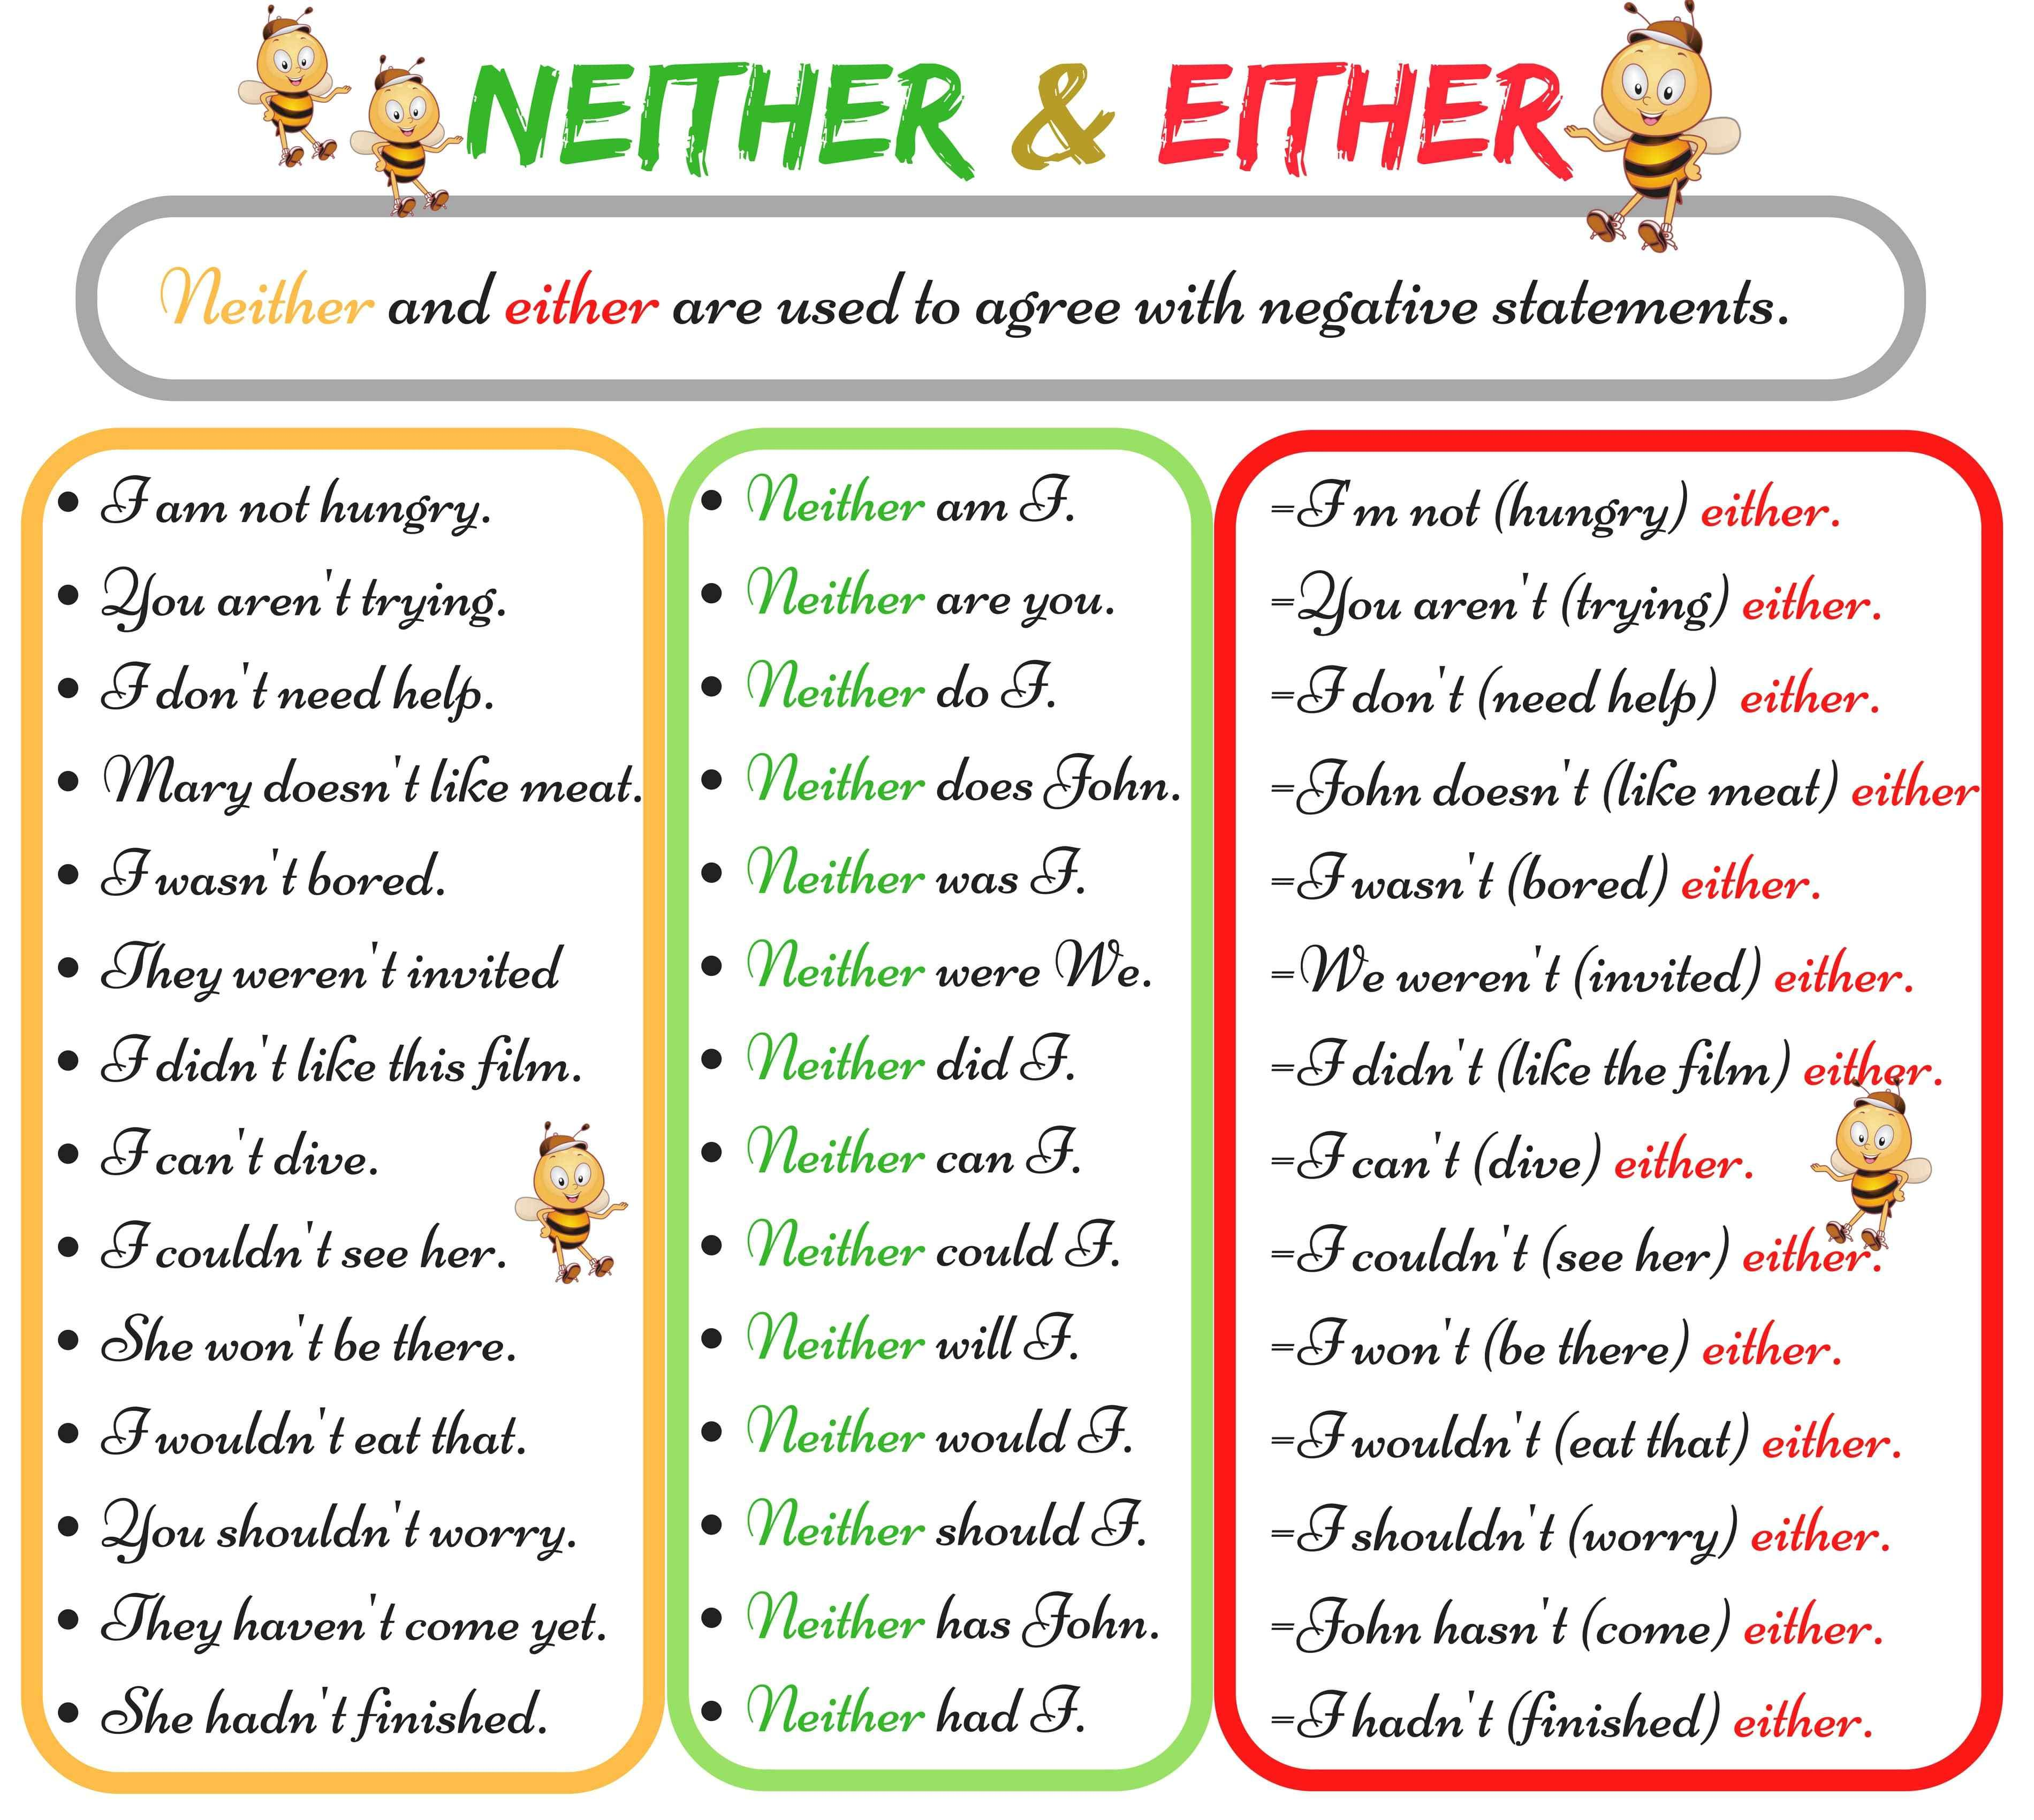 The Difference Between Neither And Either